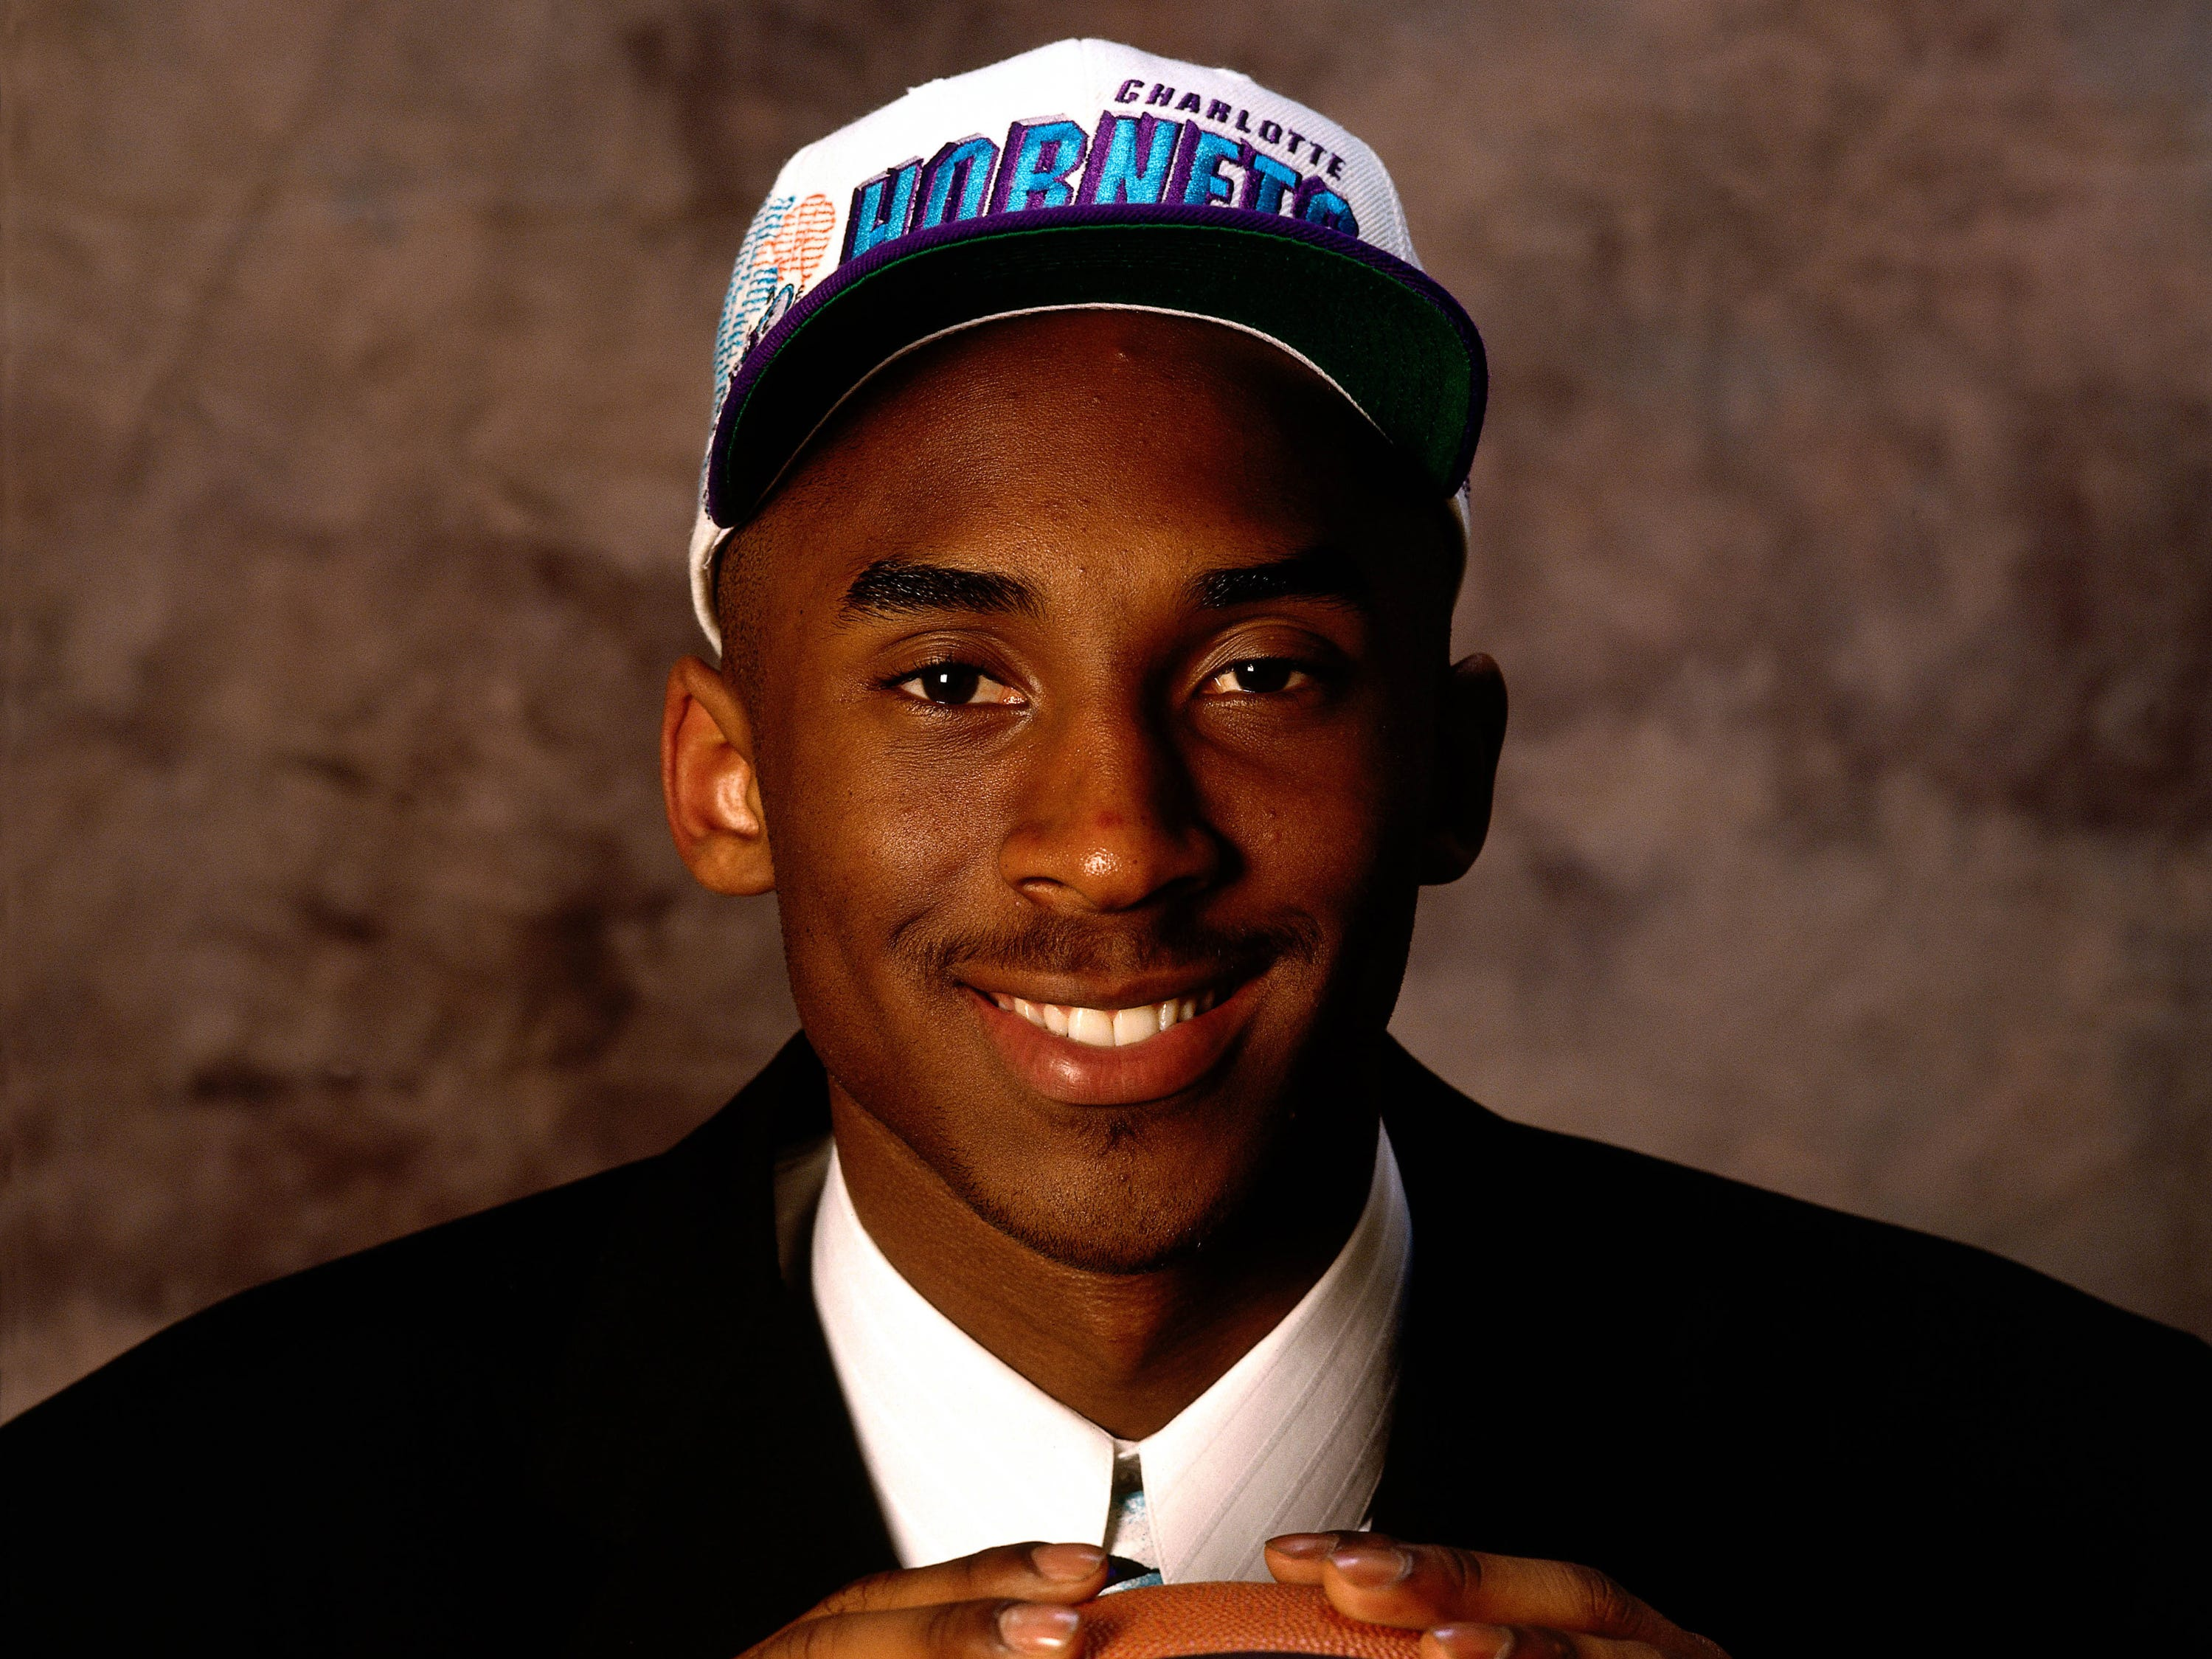 The Hornets drafted Kobe No. 13 overall in the 1996 NBA draft. Charlotte had agreed to a trade with the Lakers before the draft, which put one of the greatest careers in NBA history into motion.